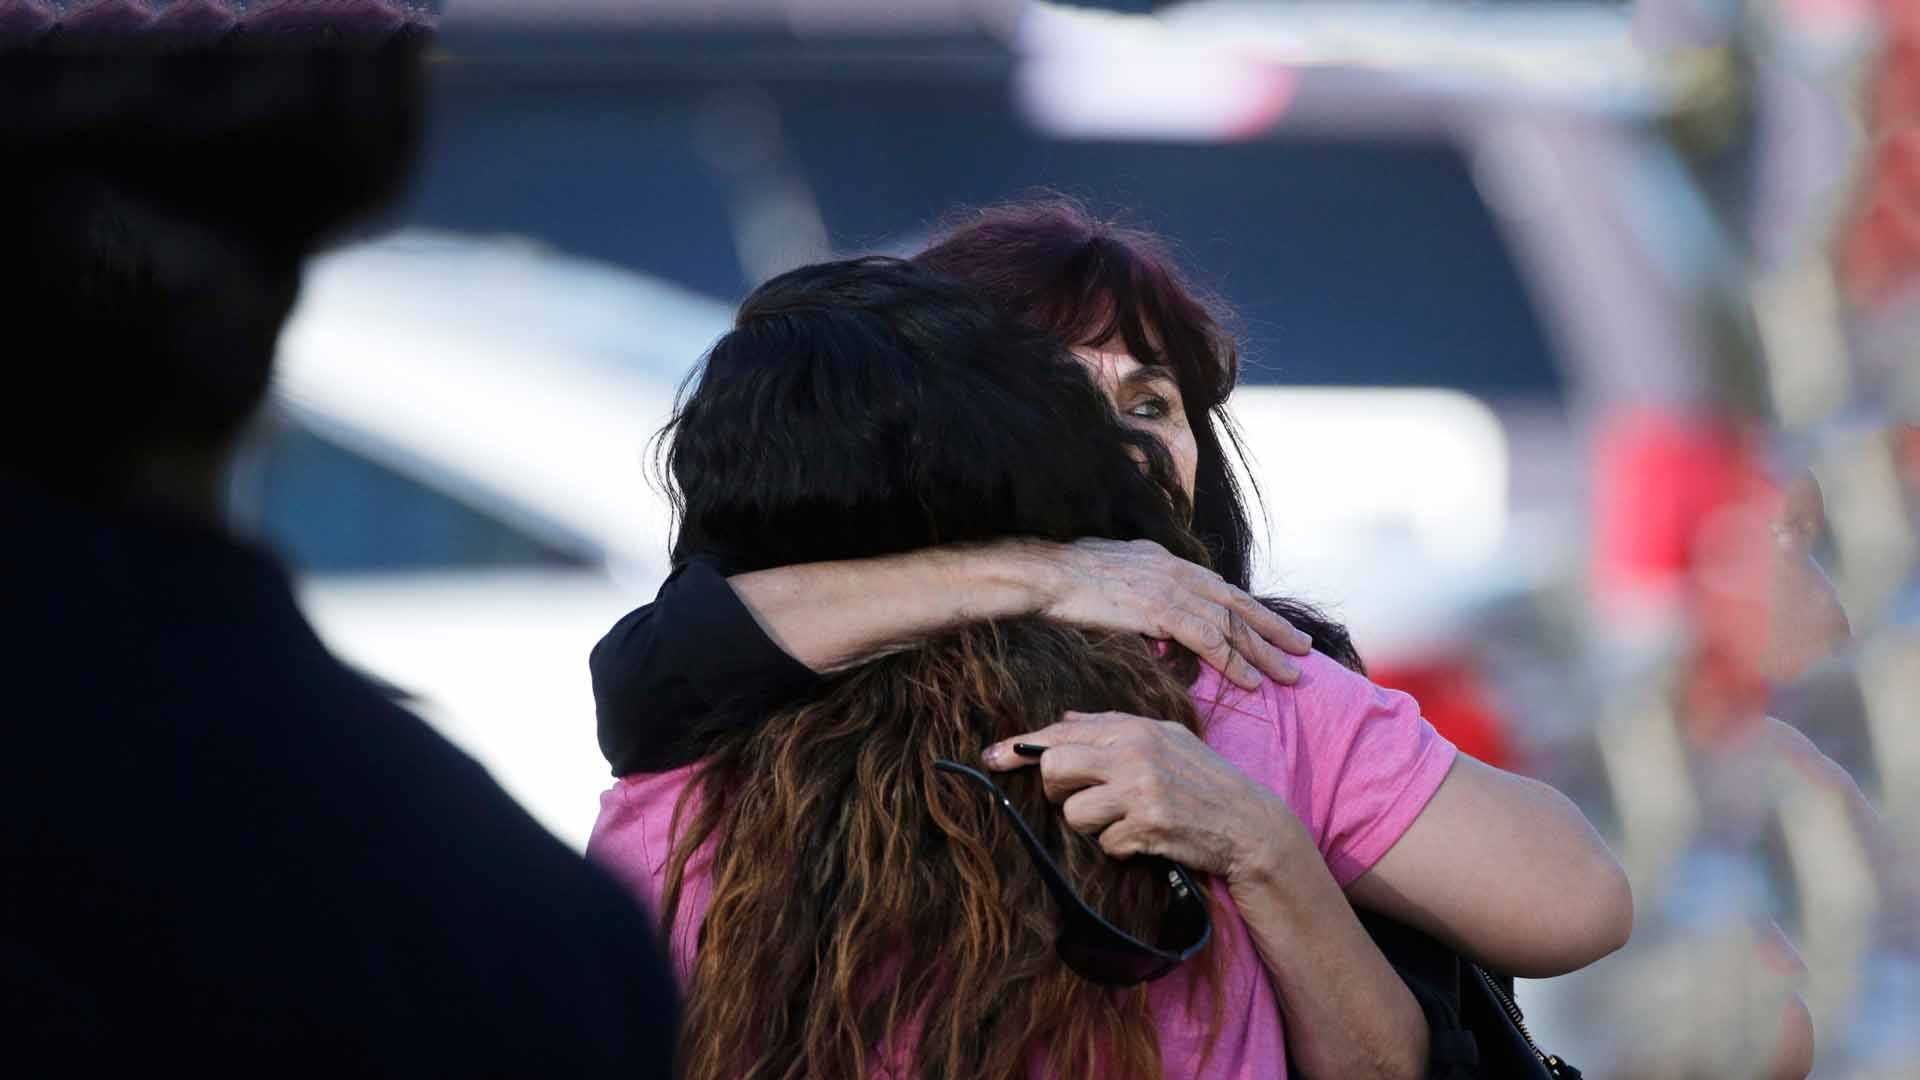 San Bernardino attack victims remembered one year later